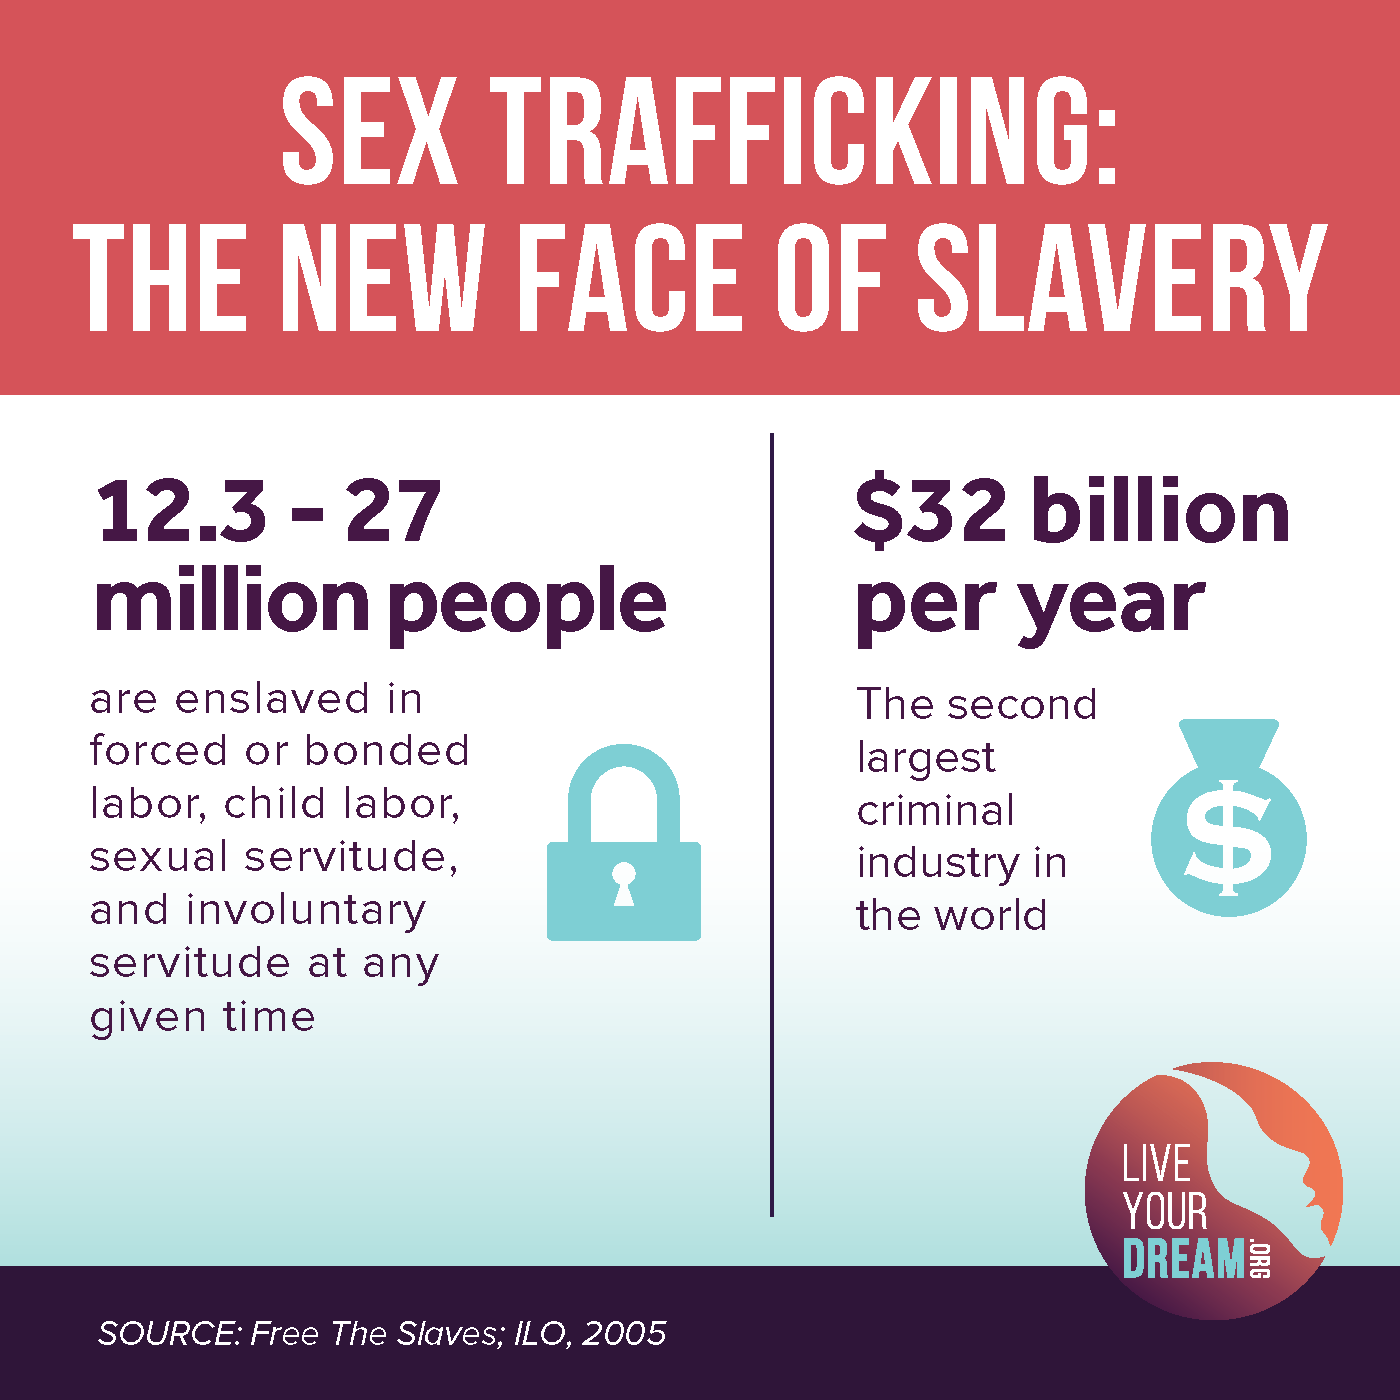 Stop Human Trafficking | End Sex Slavery | Live Your Dream